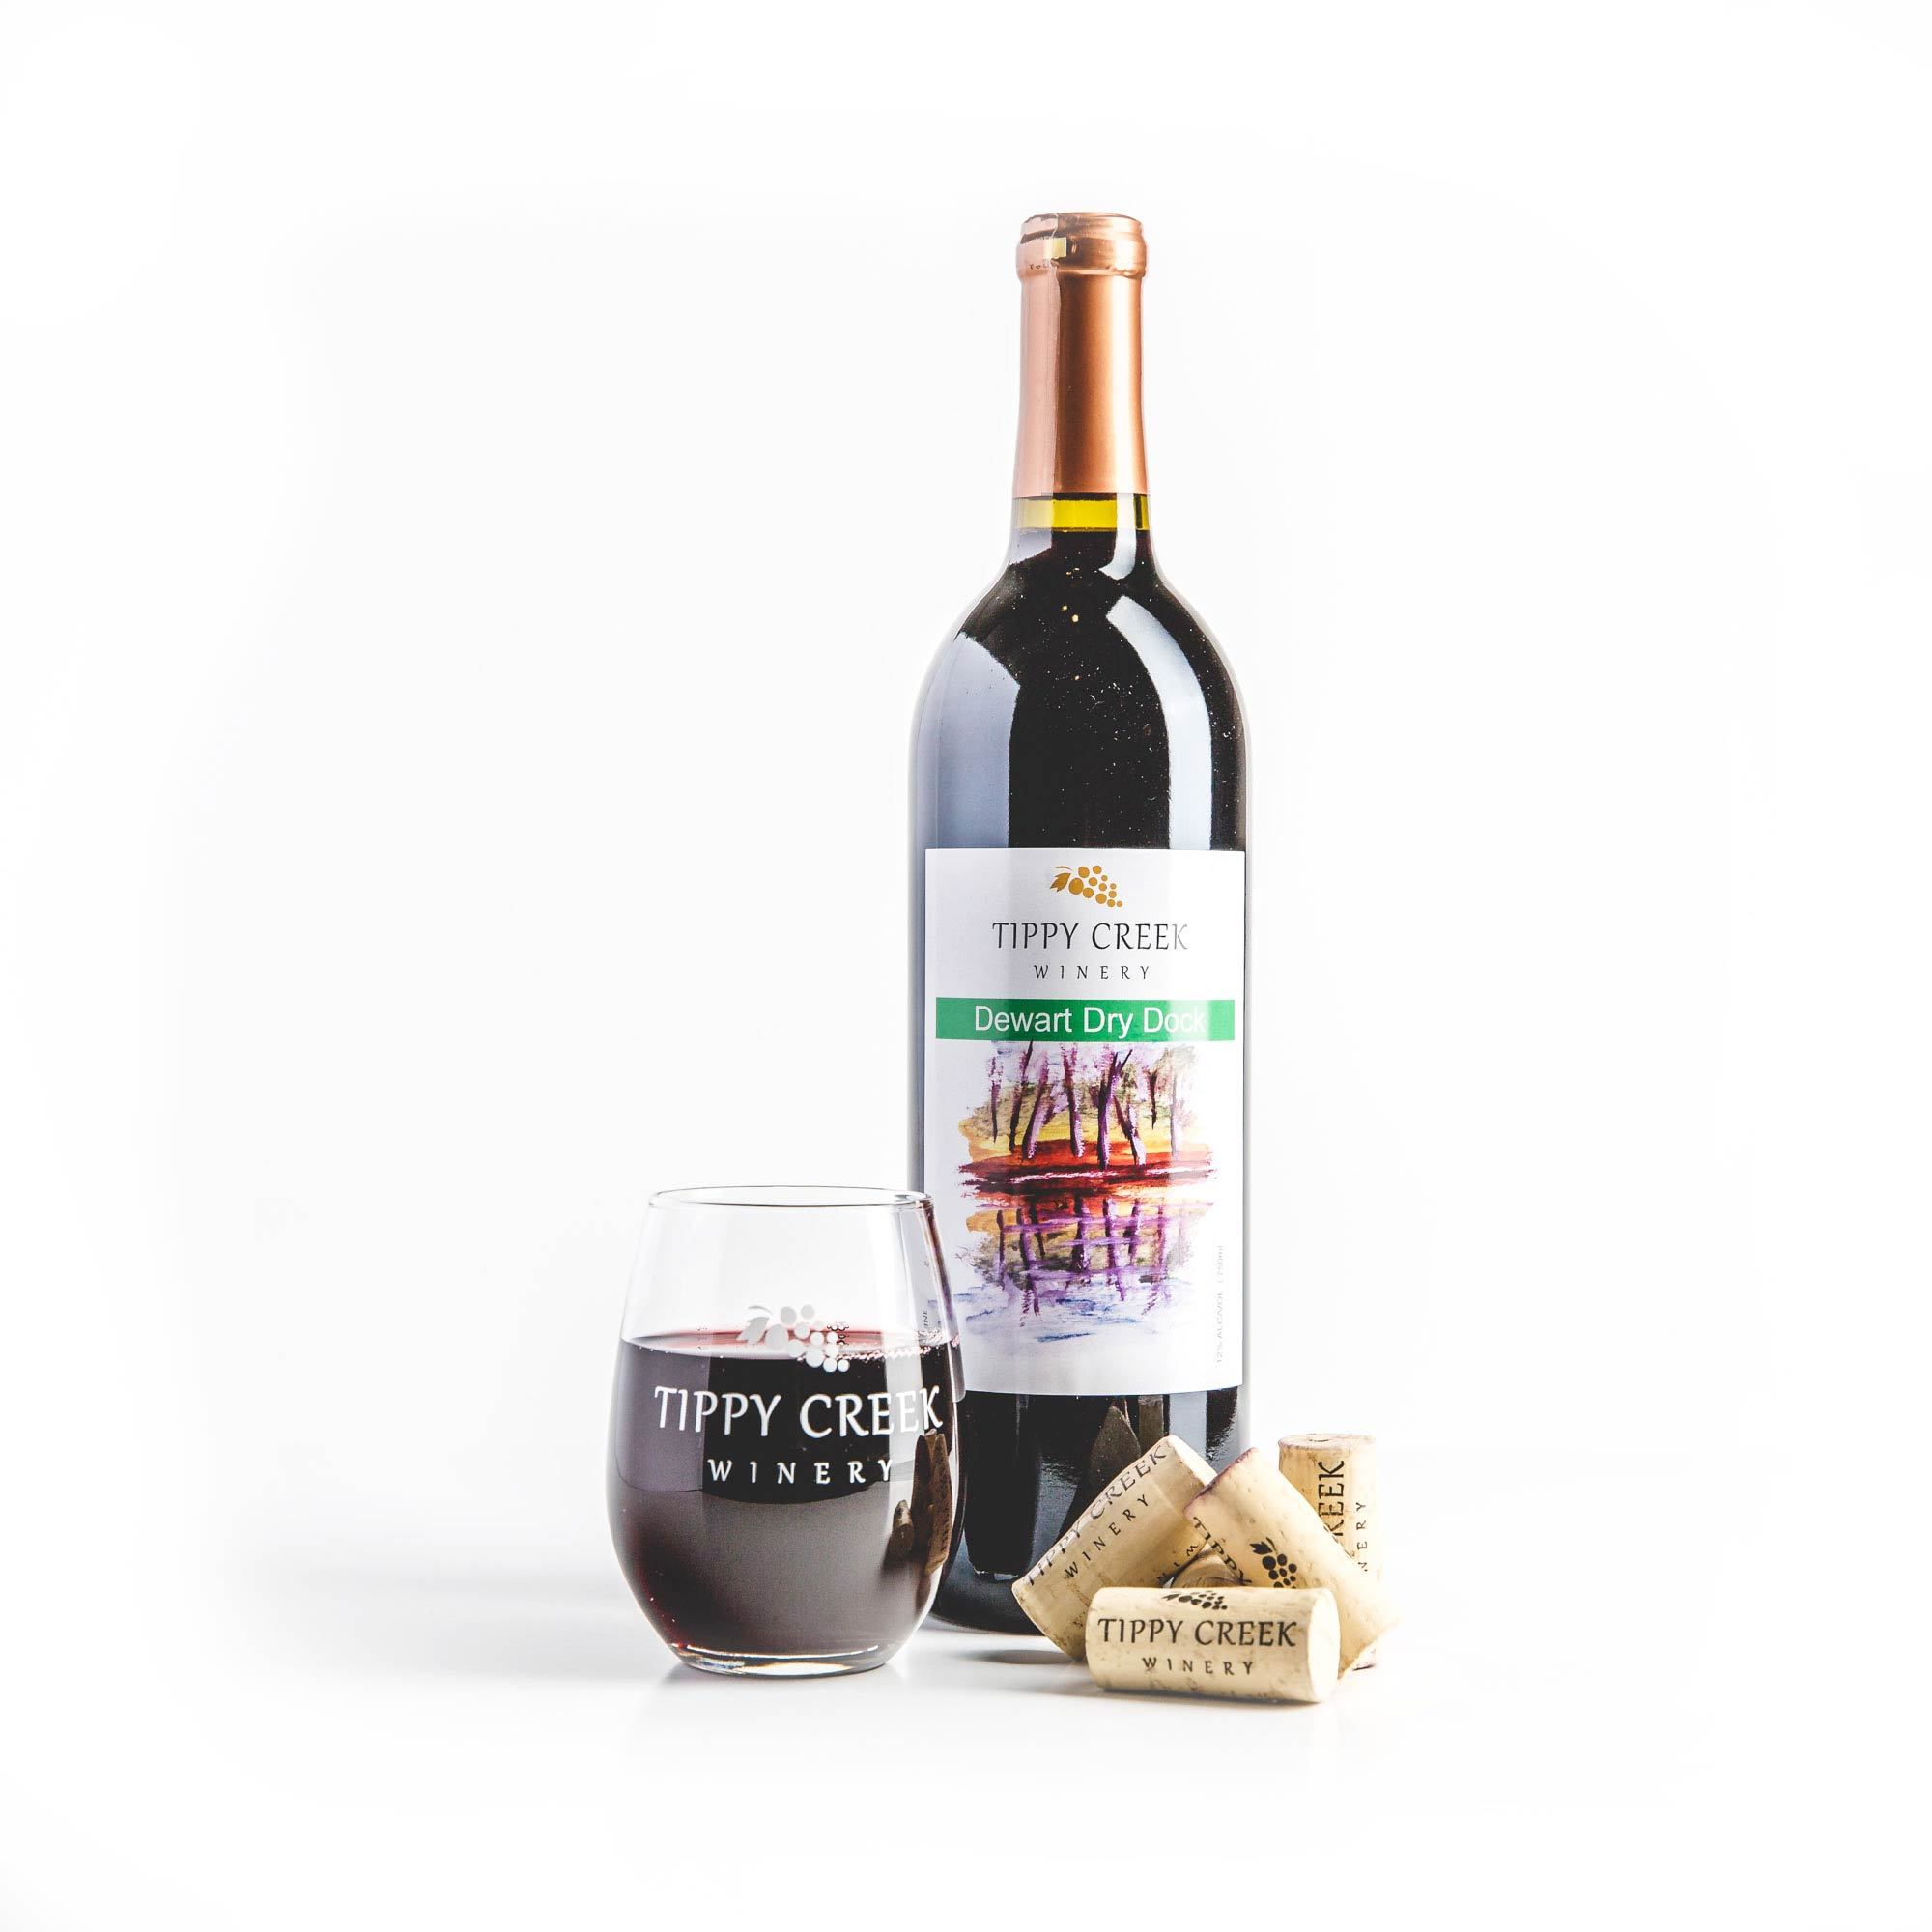 Dewart Dry Dock red wine by Tippy Creek Winery